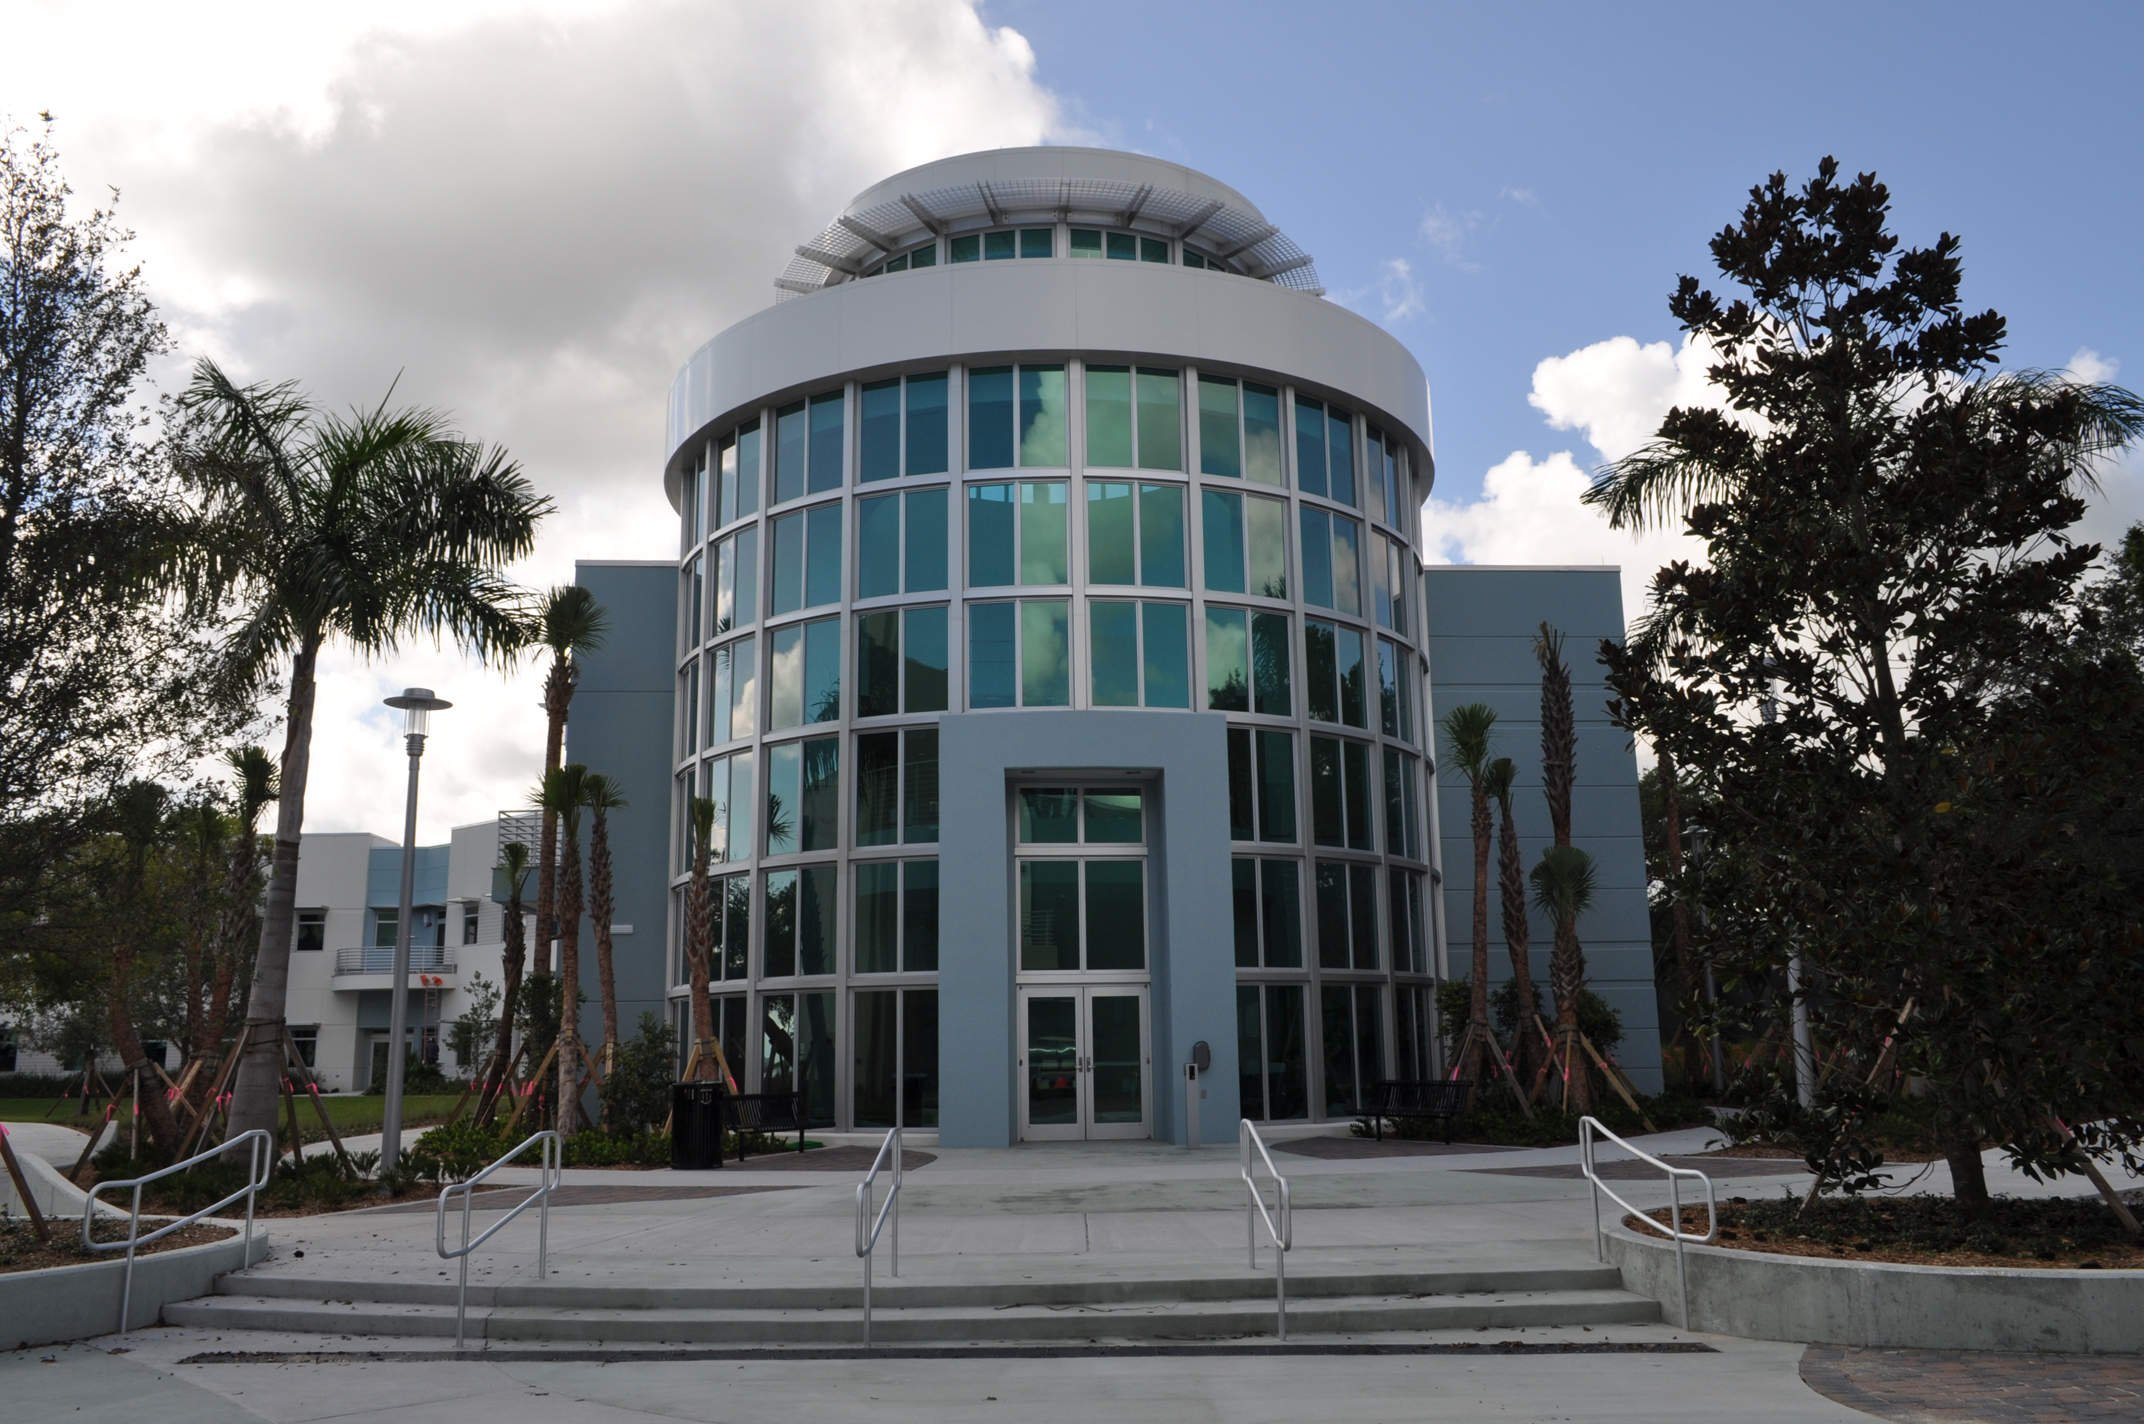 Harbor Branch Oceanographic Institute at FAU Research Laboratory II Main Entrance Green Building.JPG